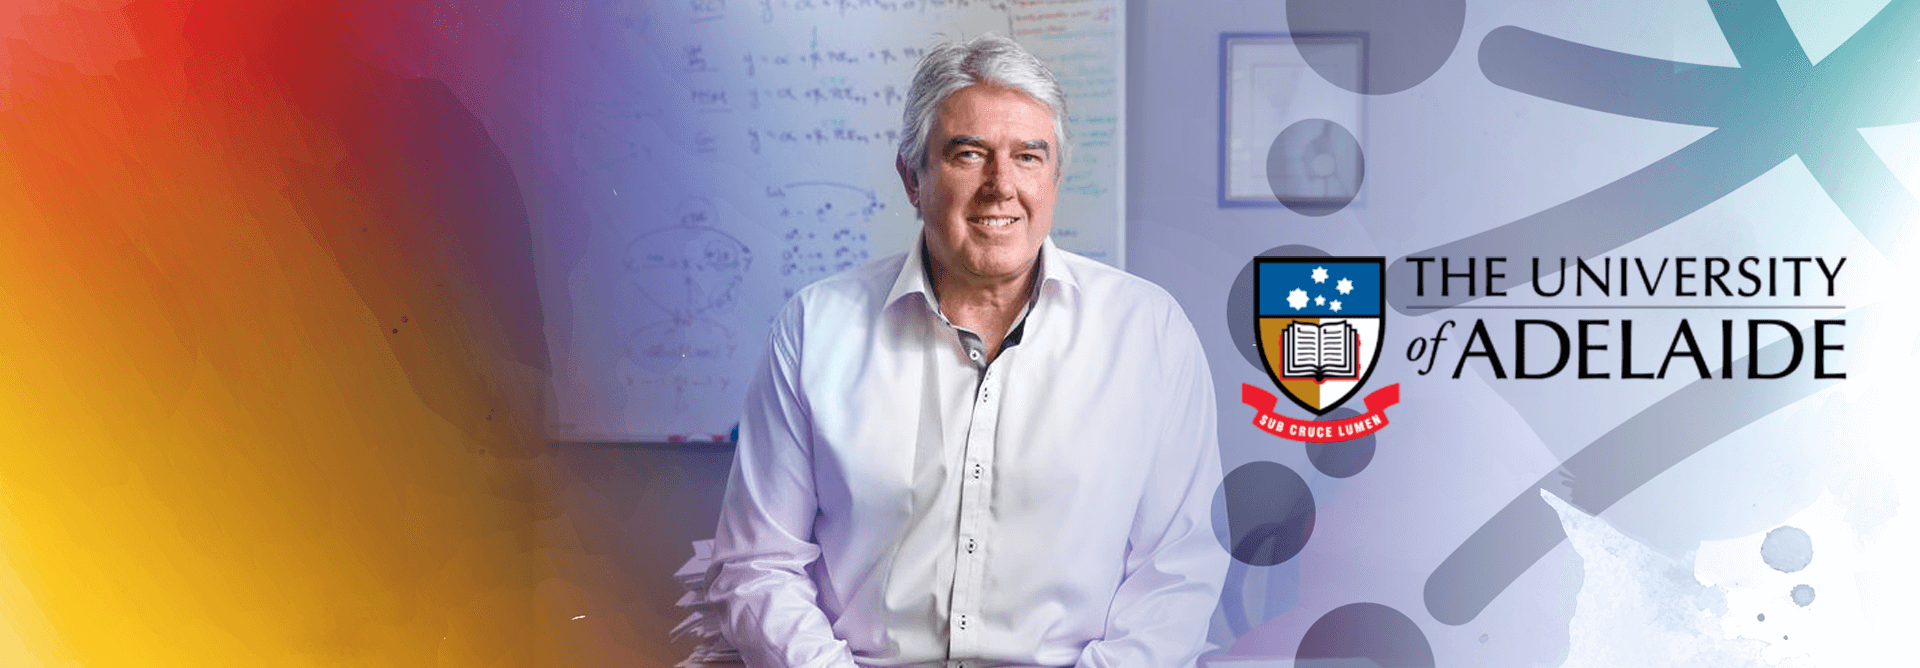 Professor John Lynch to represent The University of Adelaide on CRF Board